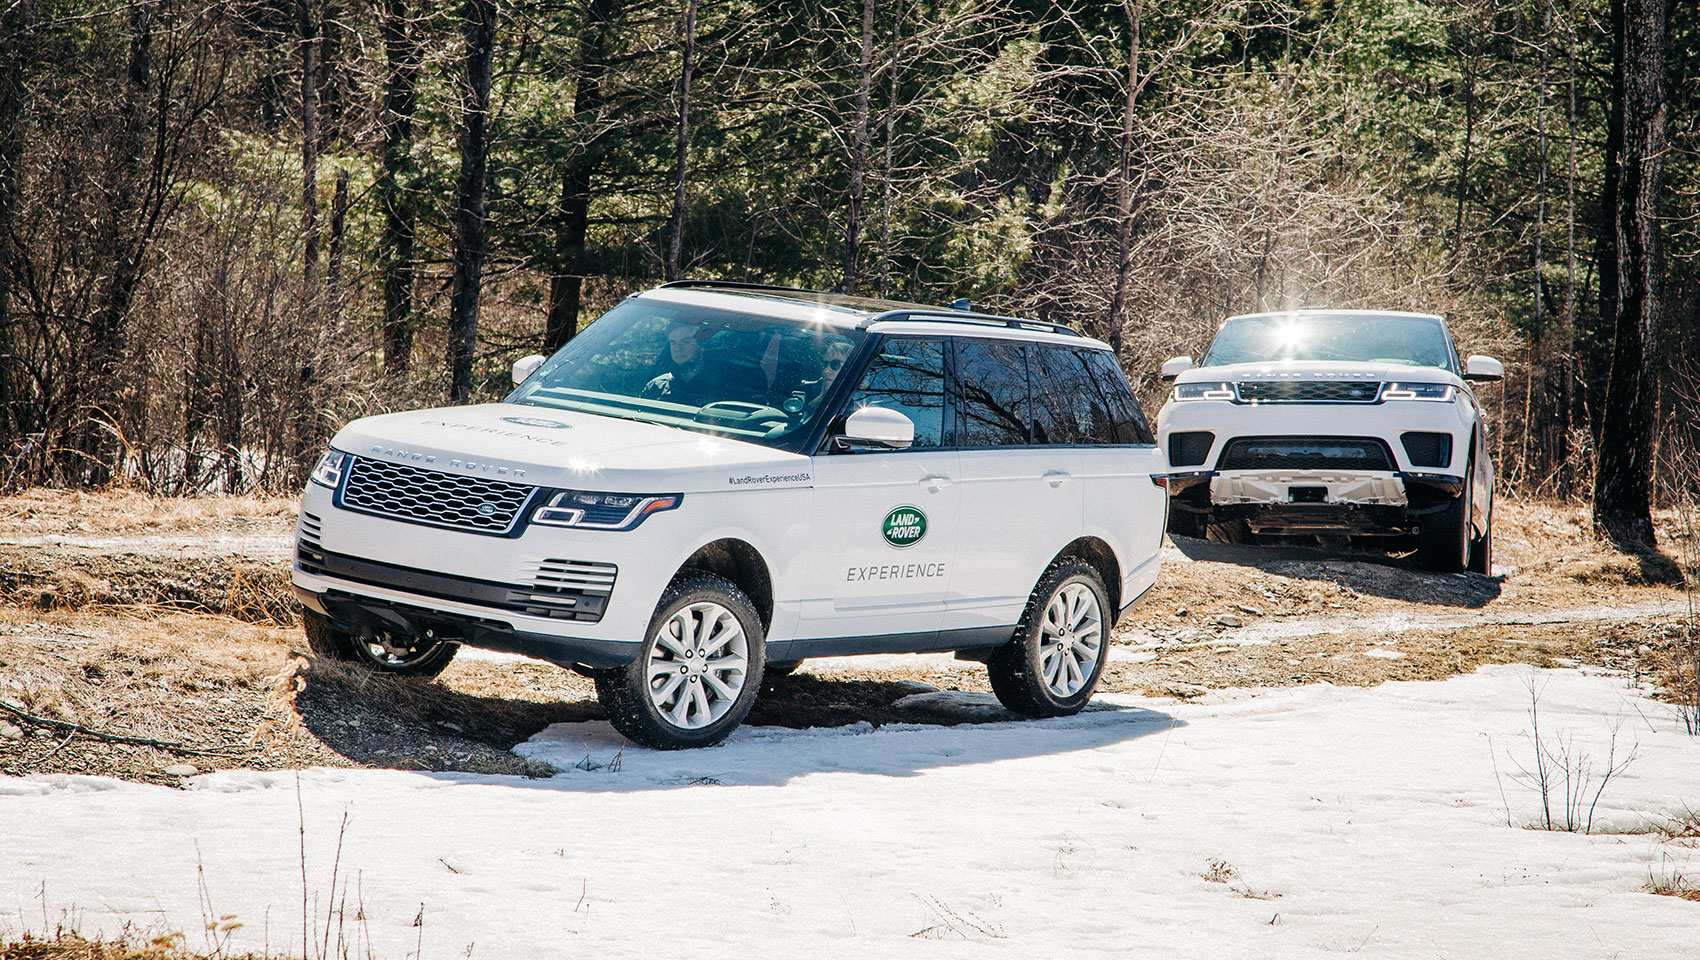 Land Rover experience in Vermont with 2 Land Rovers driving through a wooded area